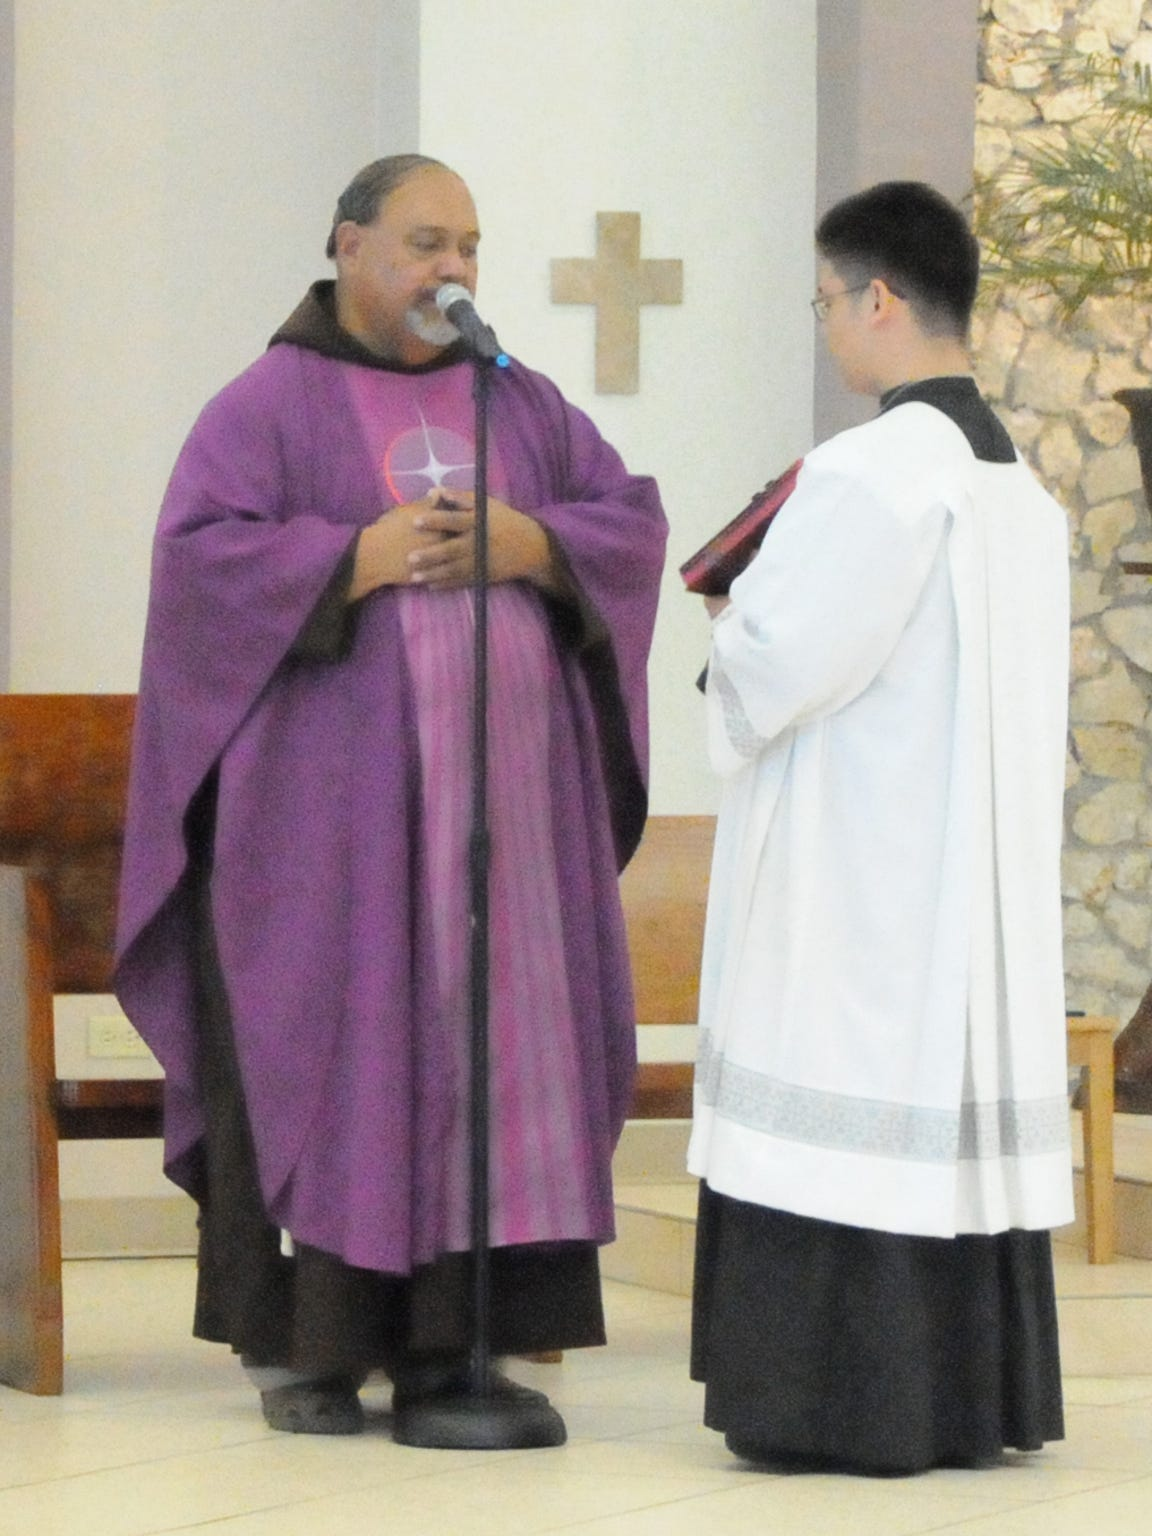 Fr. Joe English of Santa Teresita church, left, conducts